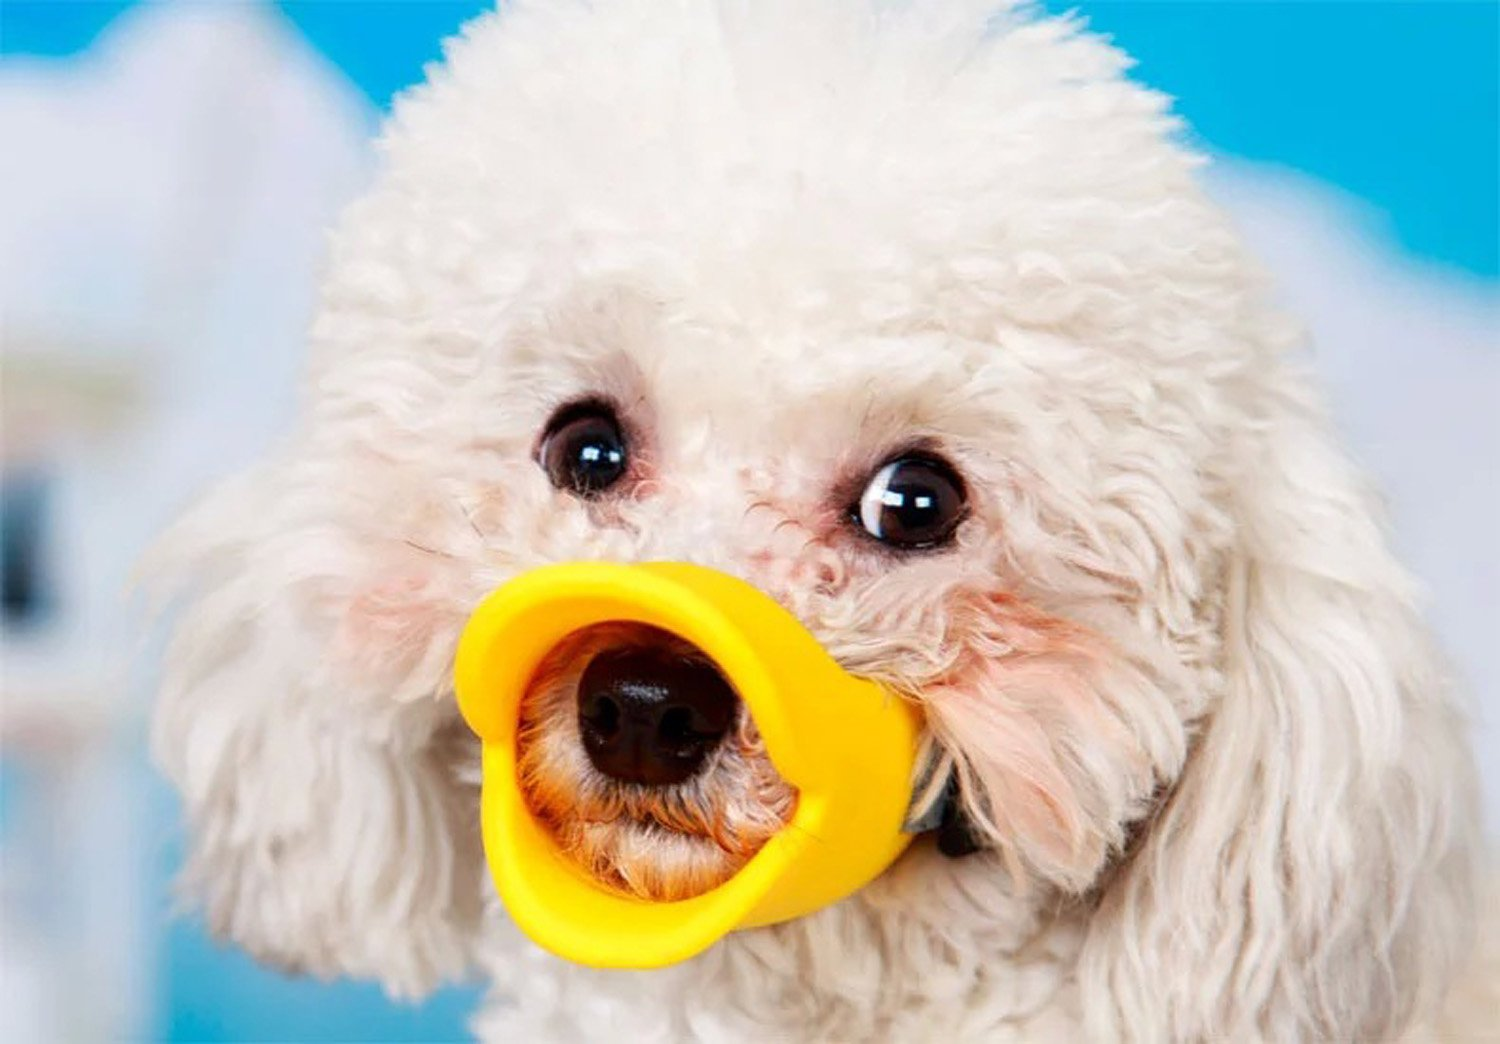 Super Cute Pet Muzzle Anti Bite Dog Mussel Duck Mouth Shape Dog Mouth Covers Dog Muzzles (M, yellow)